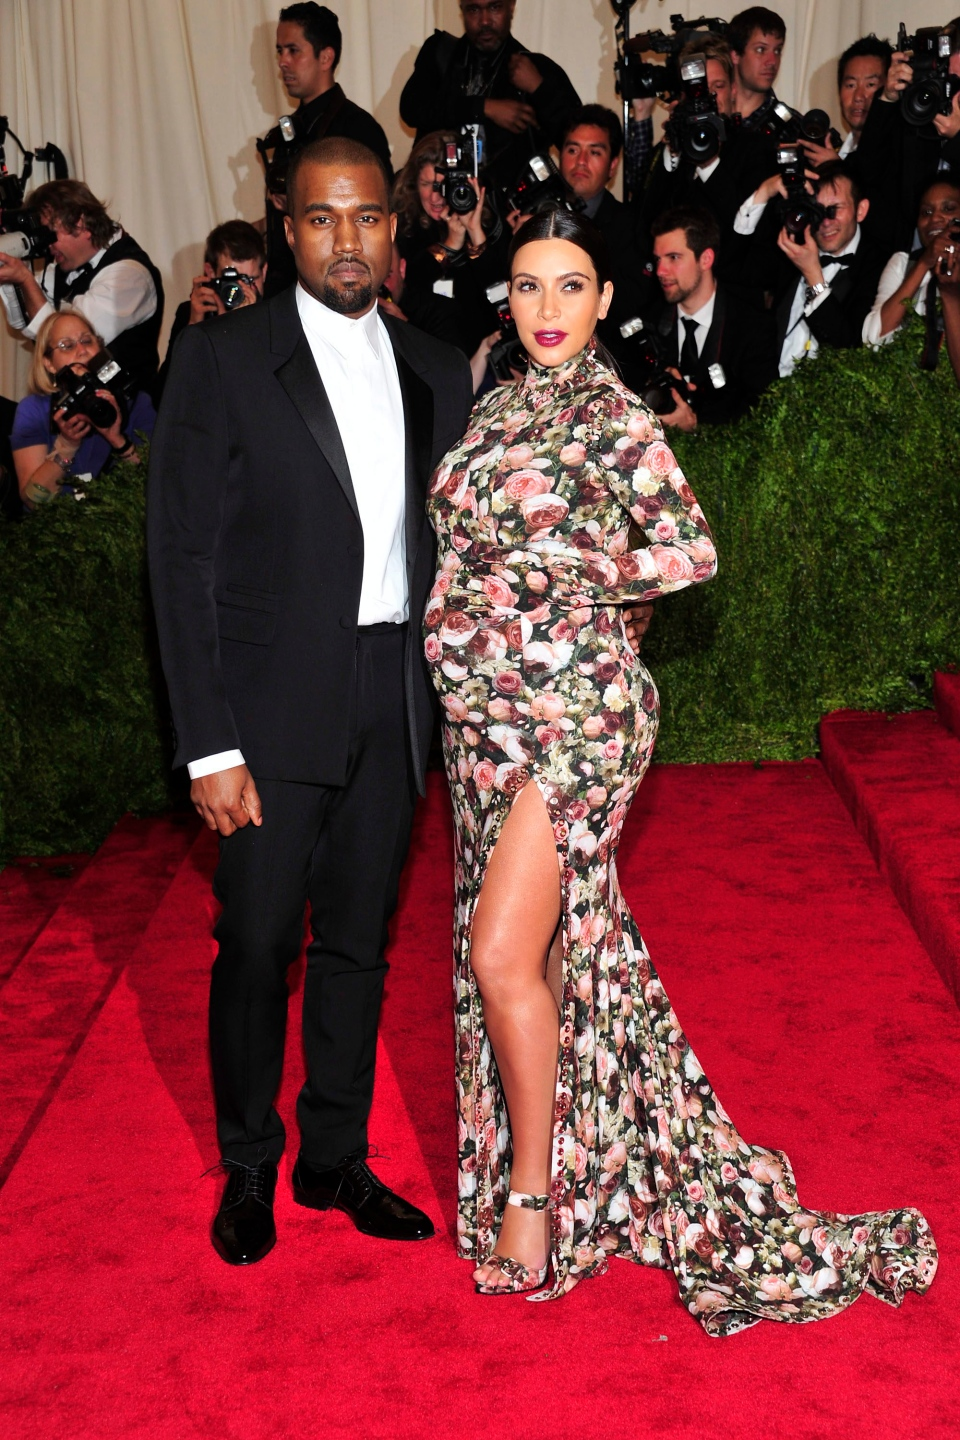 Kanye West and Kim Kardashian attends The Metropolitan Museum of Art's Costume Institute benefit celebrating 'PUNK: Chaos to Couture' in New York on Monday, May 6, 2013. (Invision / Charles Sykes)